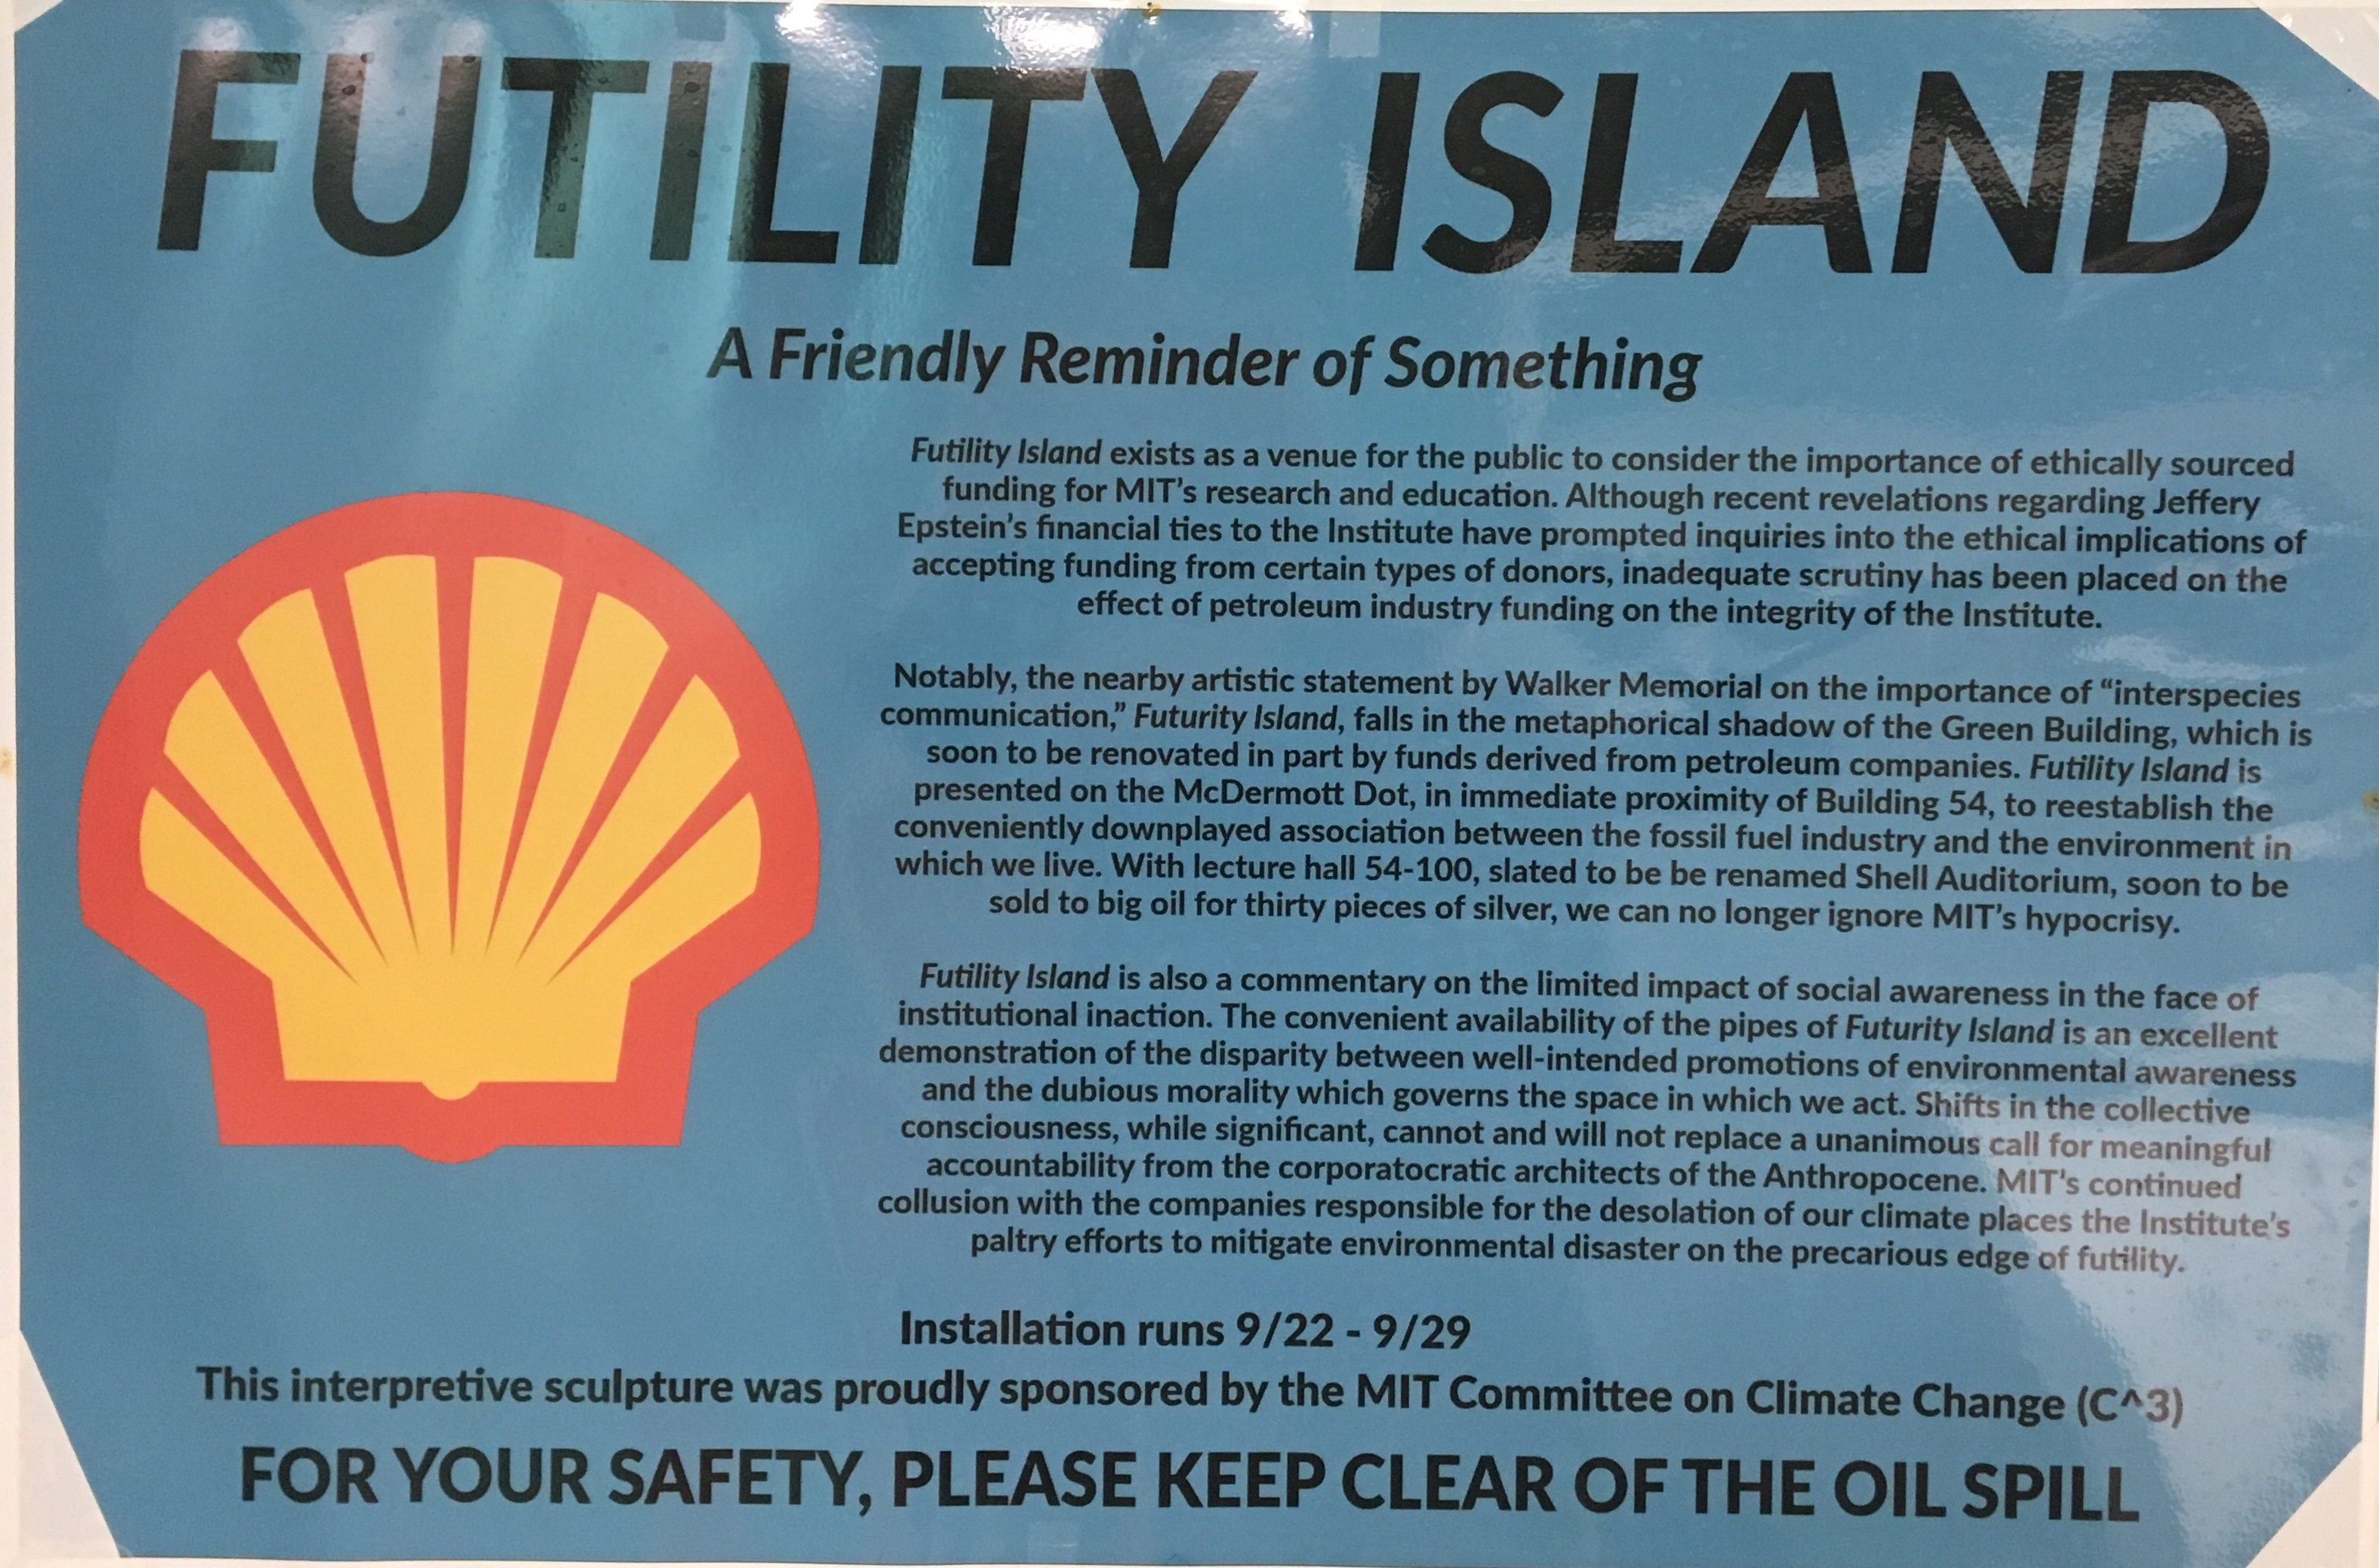 "A picture of the sign in front of the hack. It says ""FUTILITY ISLAND: A Friendly Reminder of Something"" and has text describing Futurity Island, the Green Building renovation, and denouncing MIT's ""continued collusion"" with polluting companies."